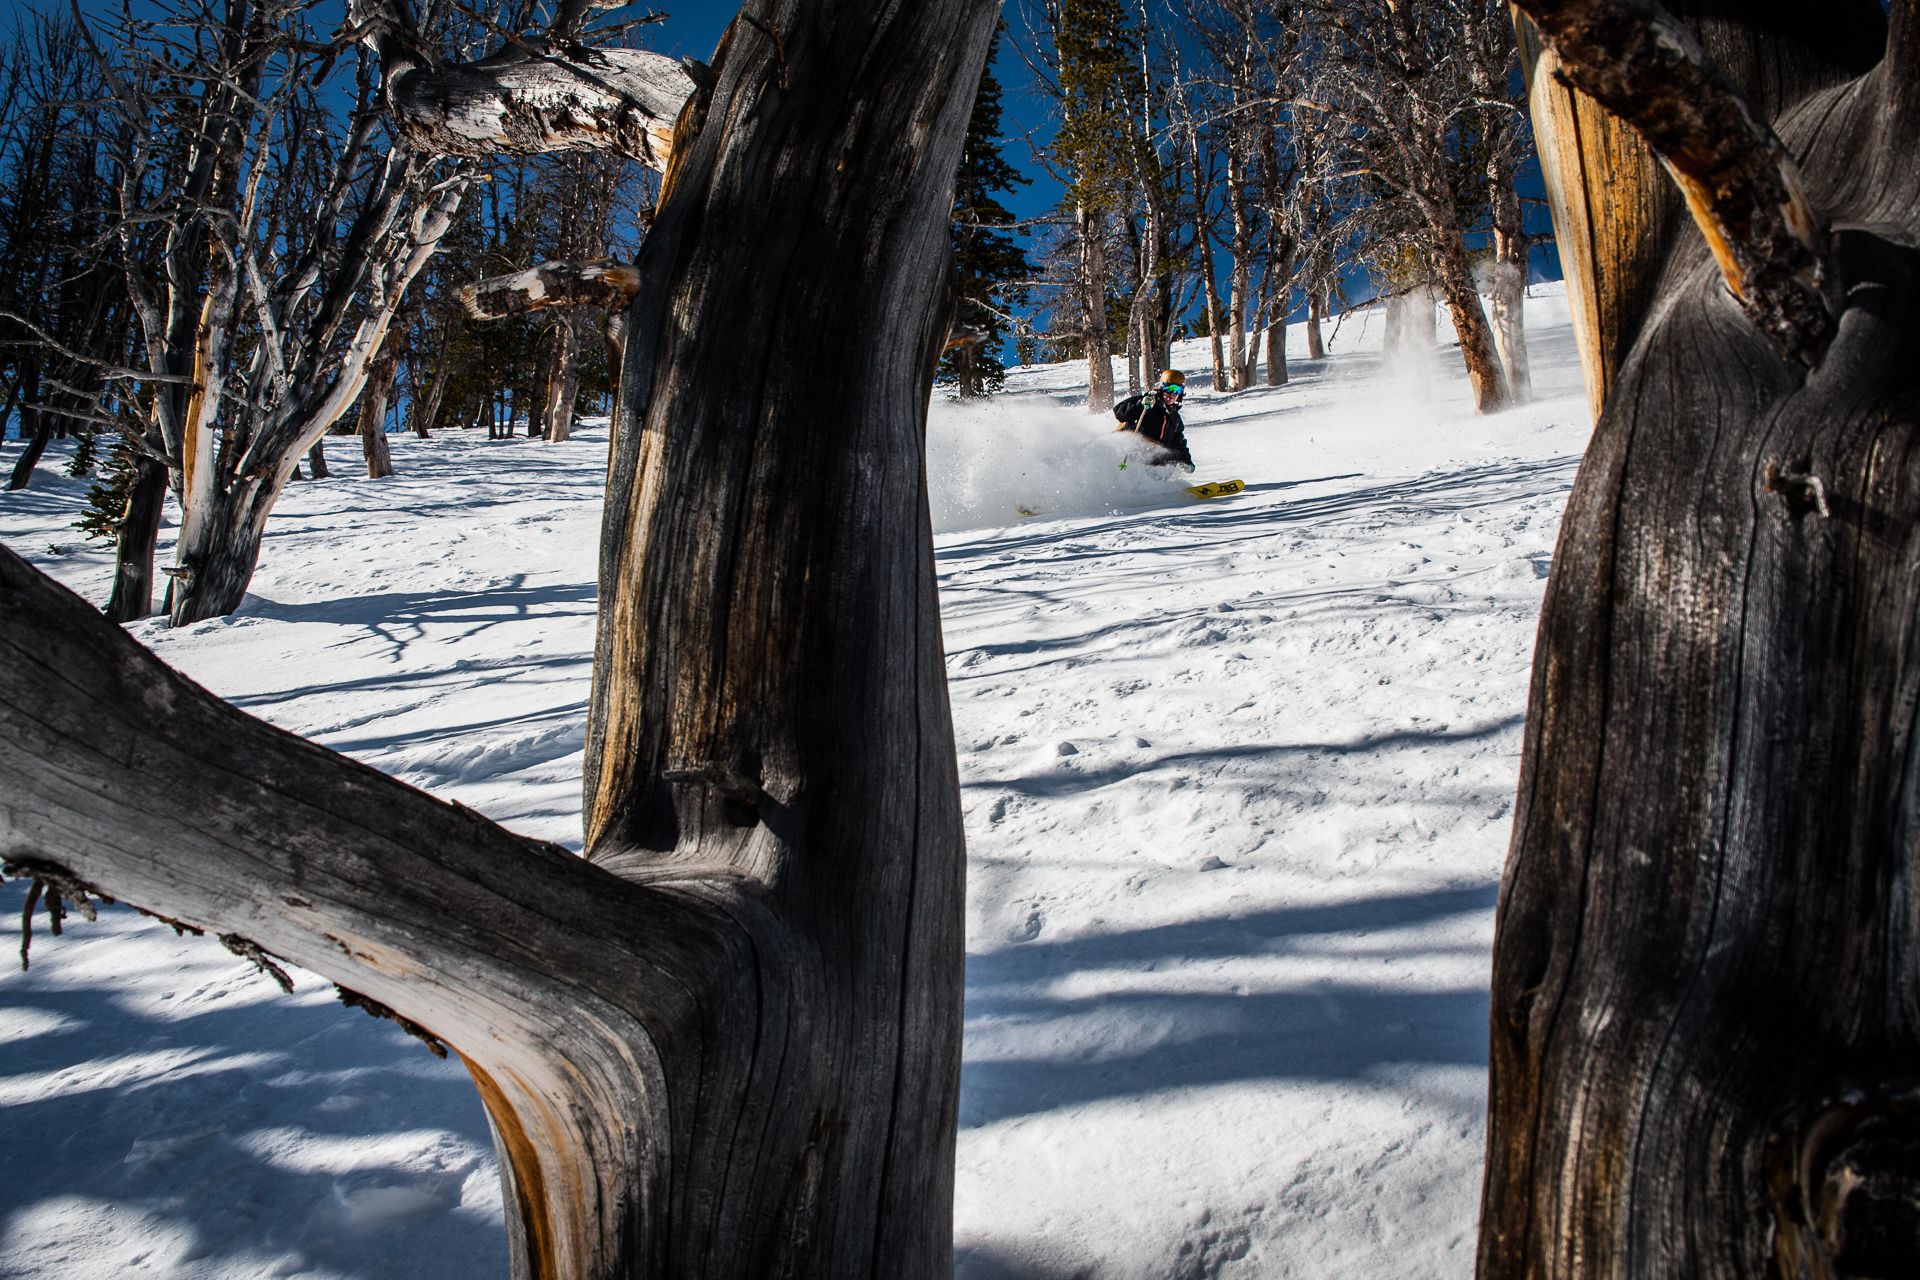 Ski the trees, the trees in your skis. Pat Sewell at Big Sky, Montana. PHOTO: David Reddick